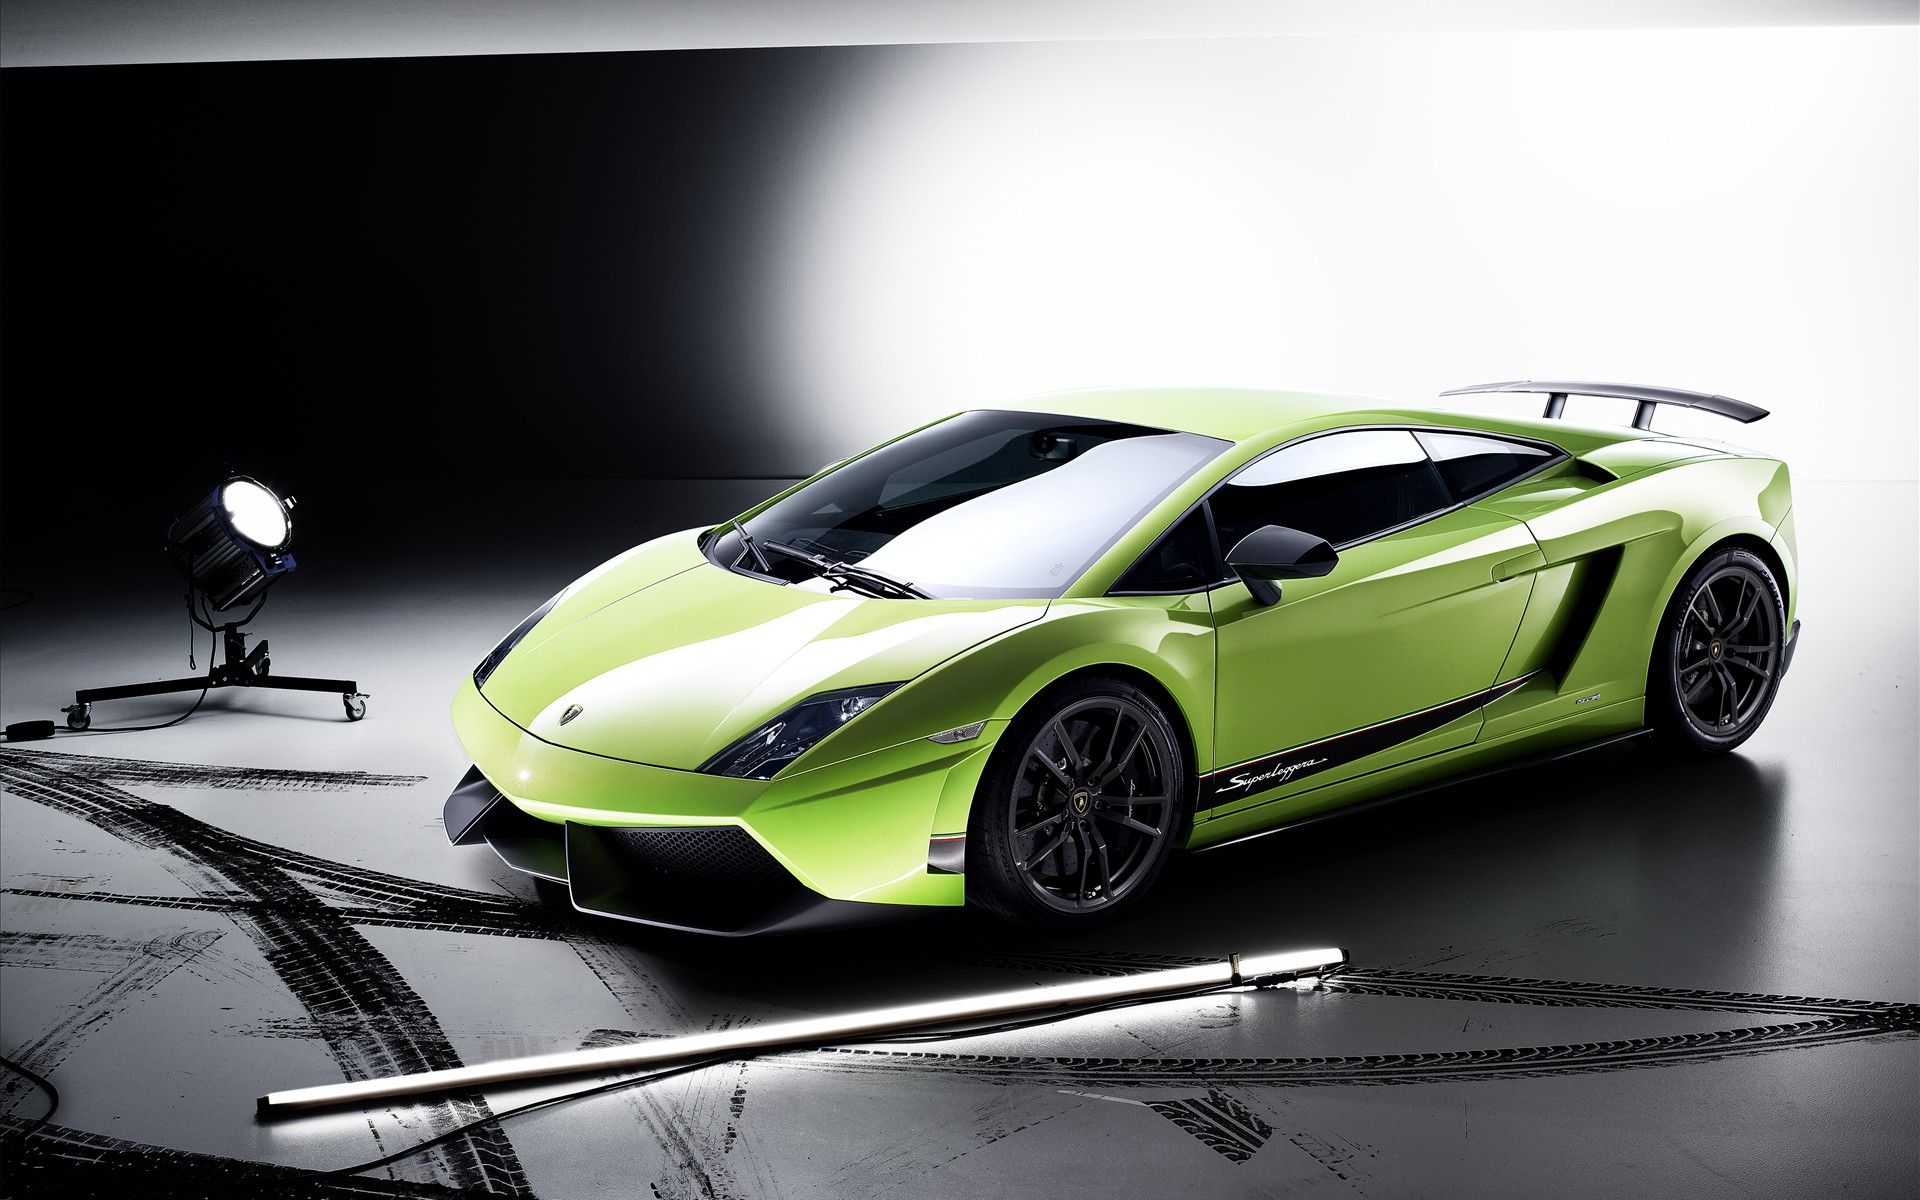 Lamborghini Gallardo LP570-4 Superleggera - 1920 x 1200, 05 из 16